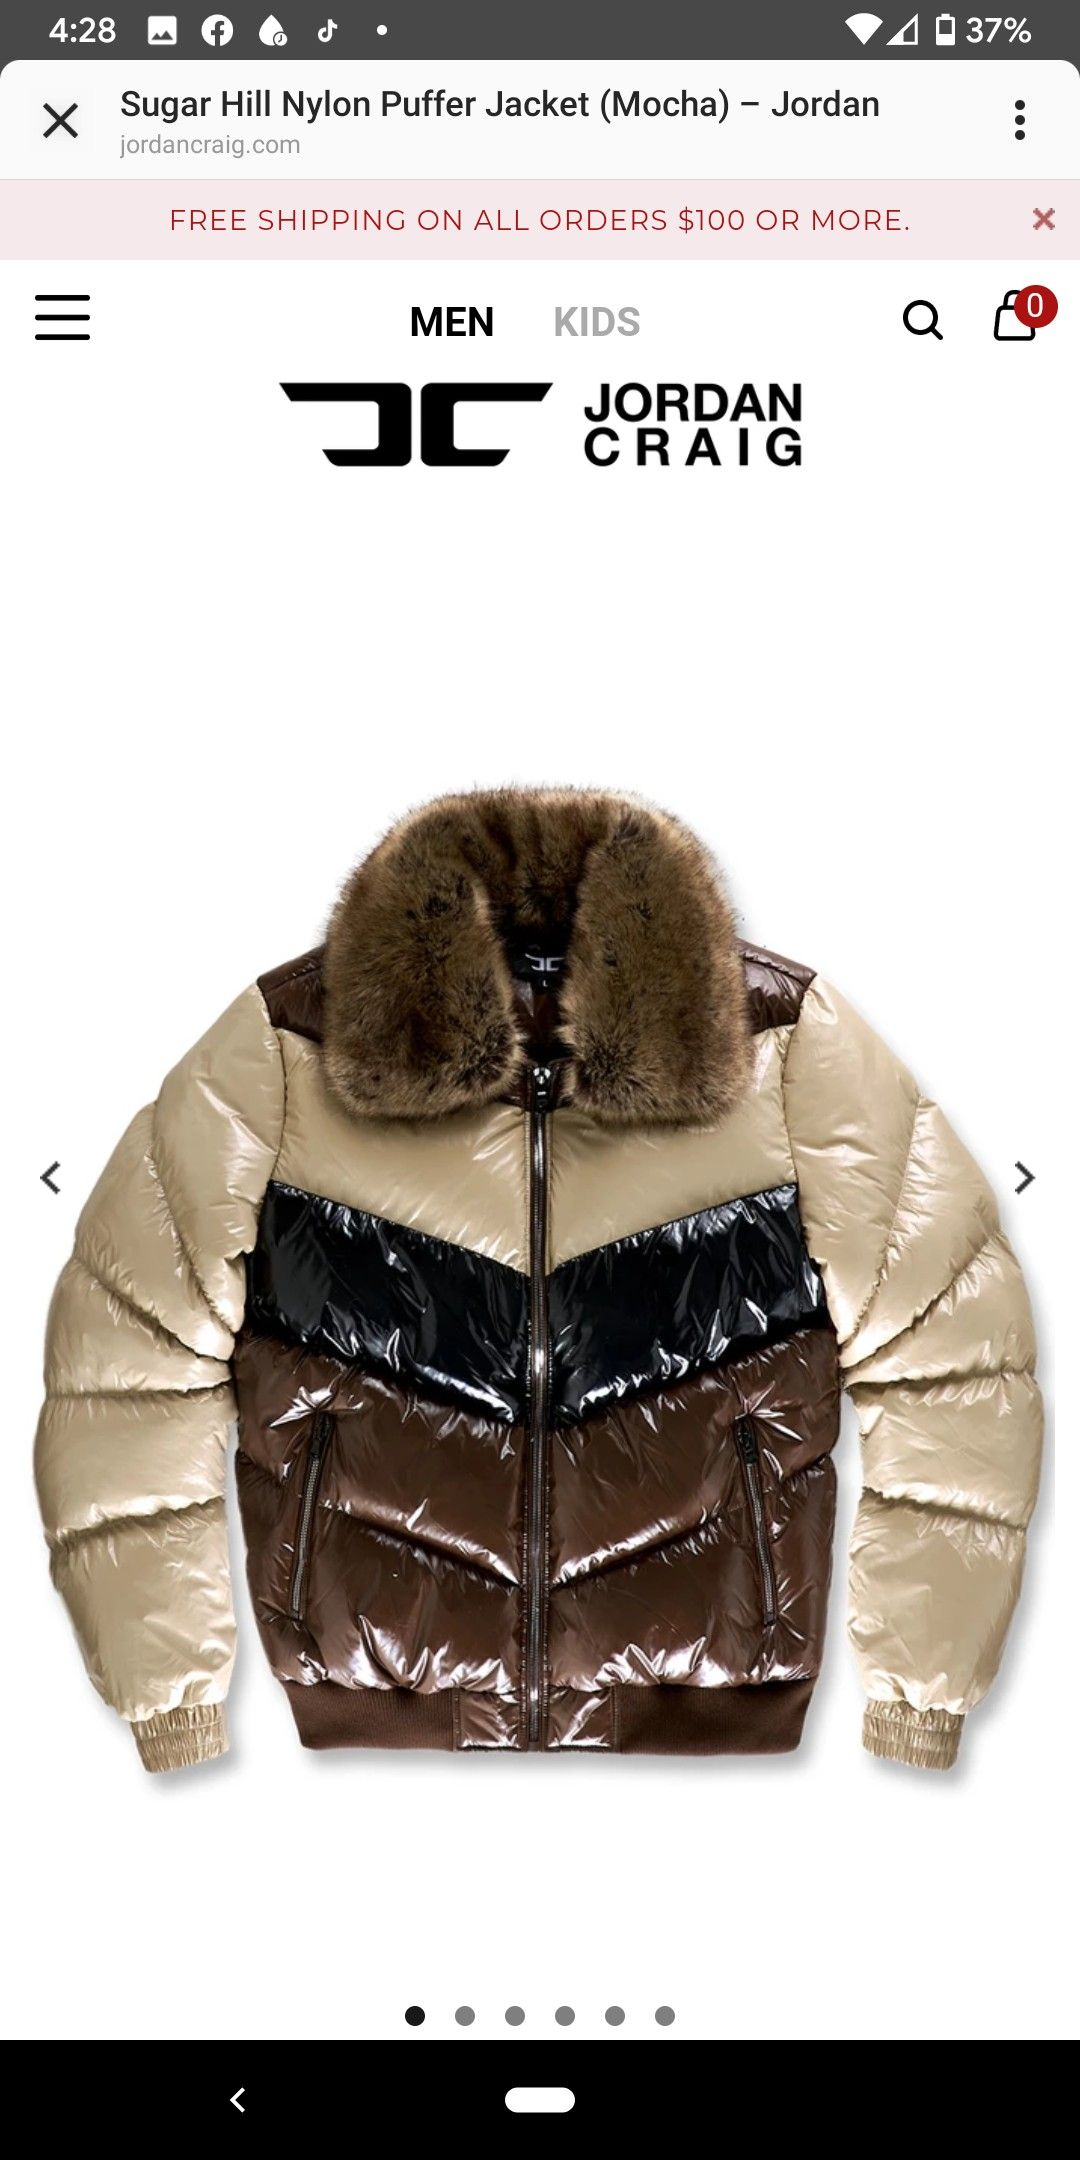 Pin By Shawn Dorsey On Fashionista Winter Jackets Puffer Jackets Jackets [ 2160 x 1080 Pixel ]